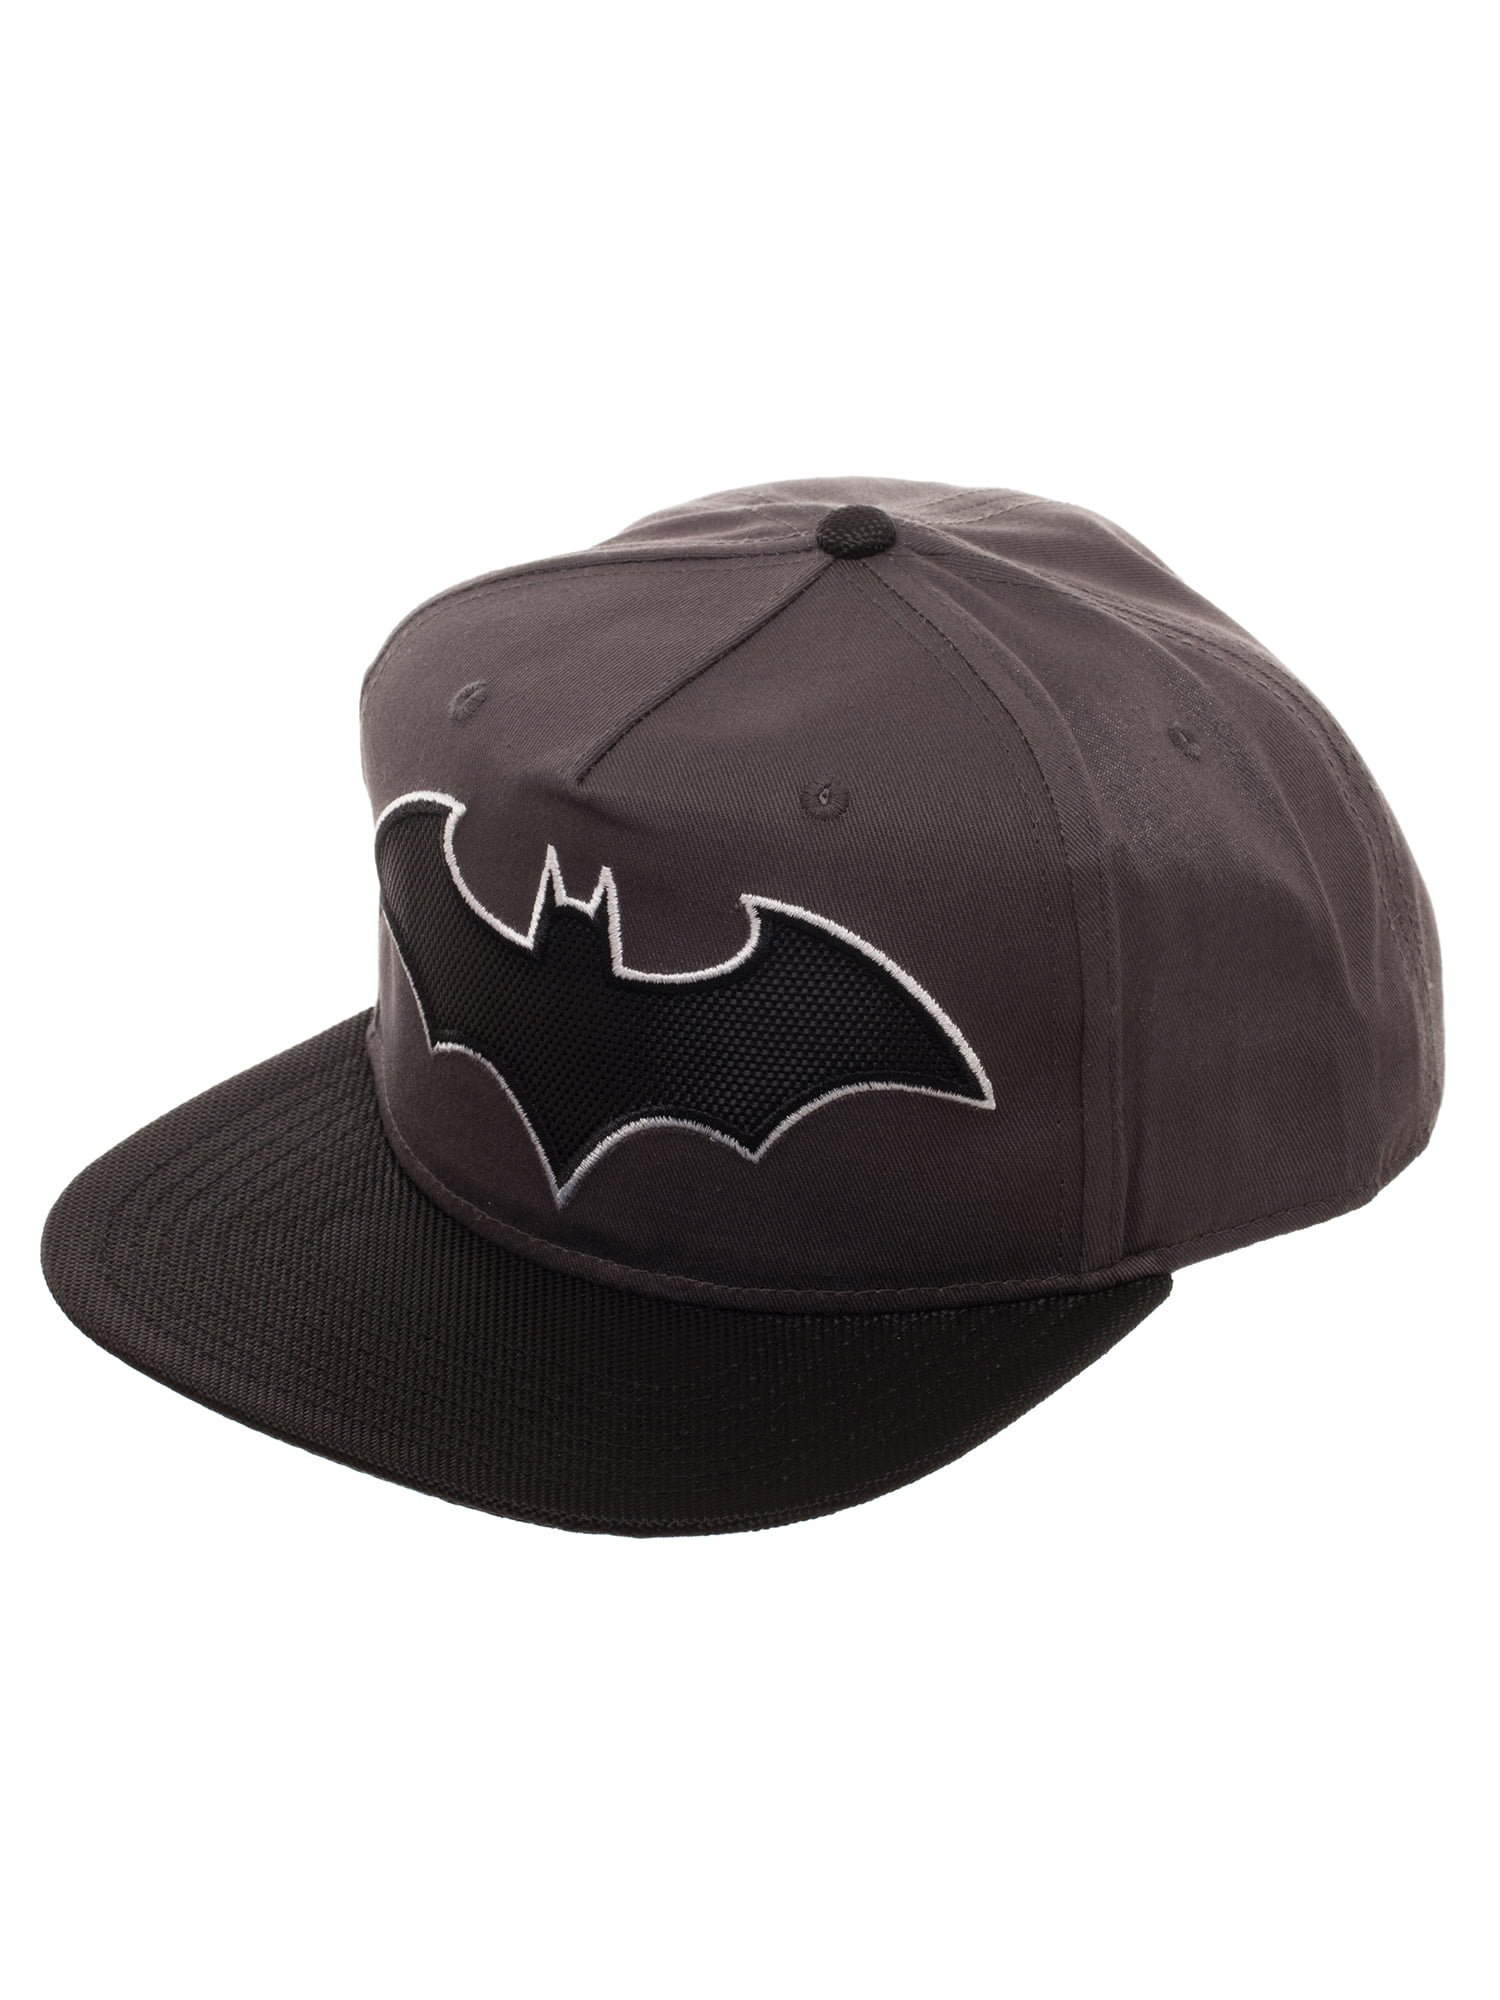 29f092723 Boy's Batman Snapback Hat with Woven Batman Emblem and Flat Bill ...